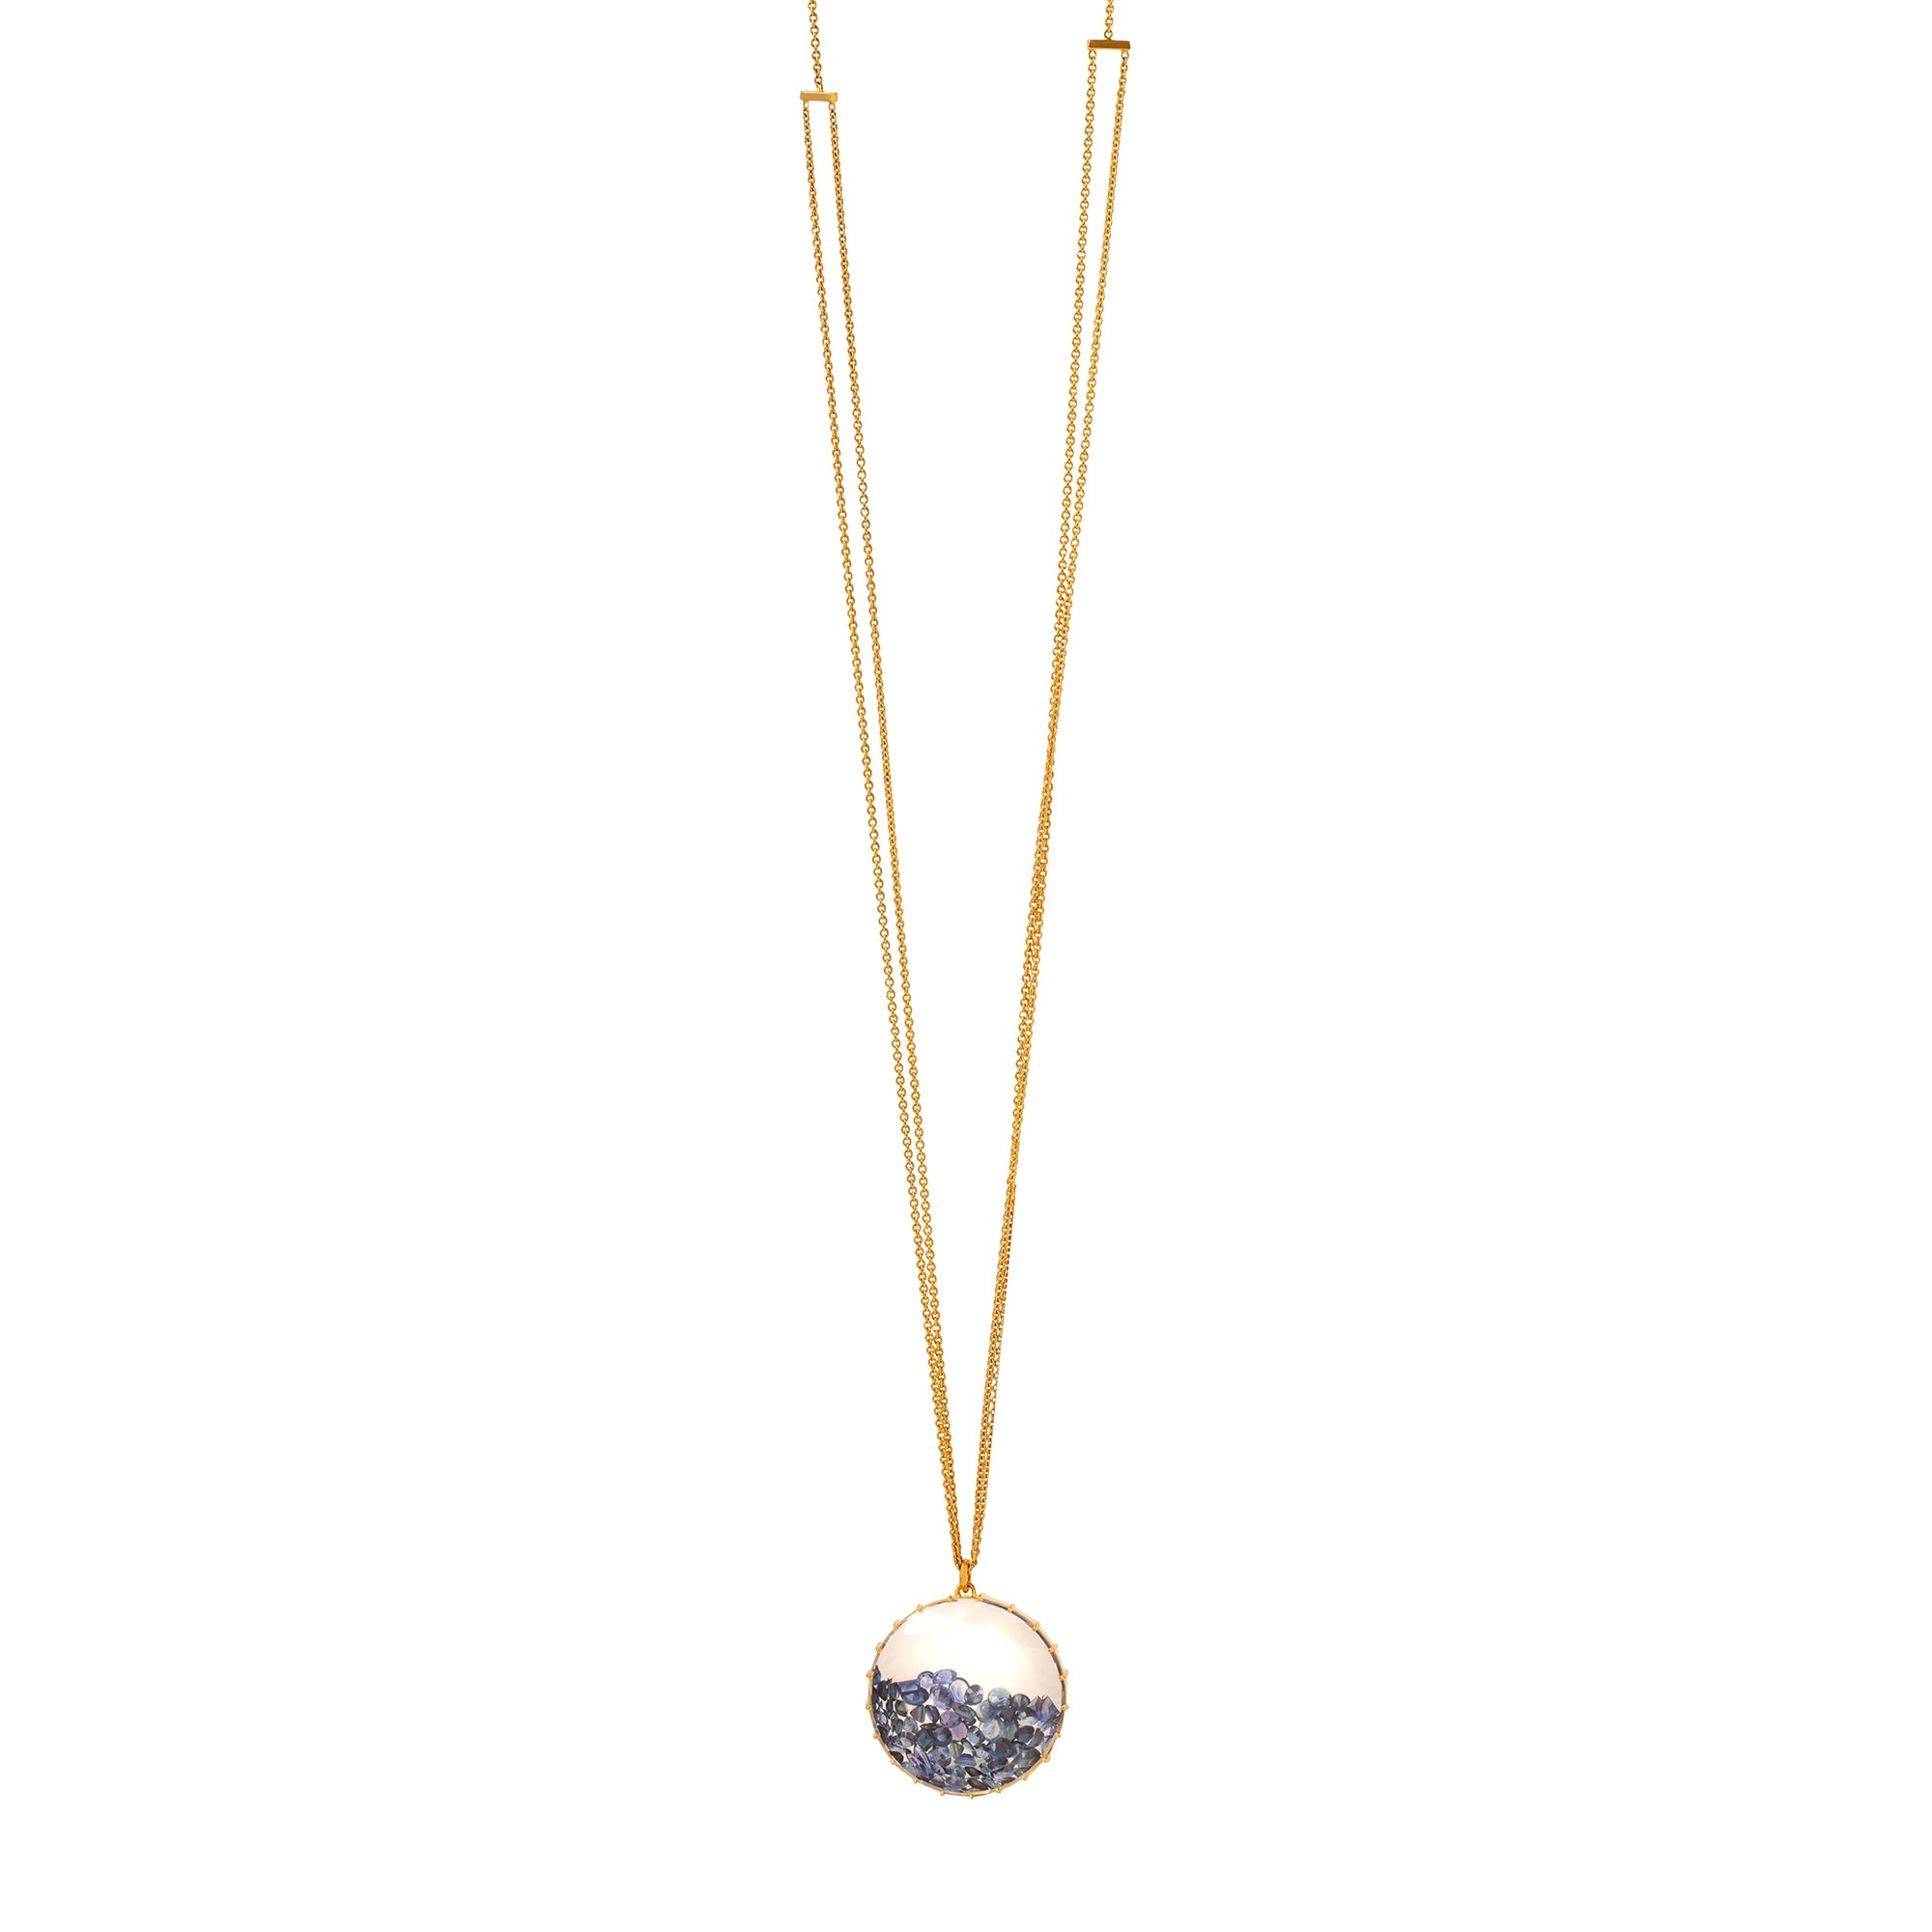 Renee Lewis Round Shake Necklace - Sapphire - Necklaces - Broken English Jewelry